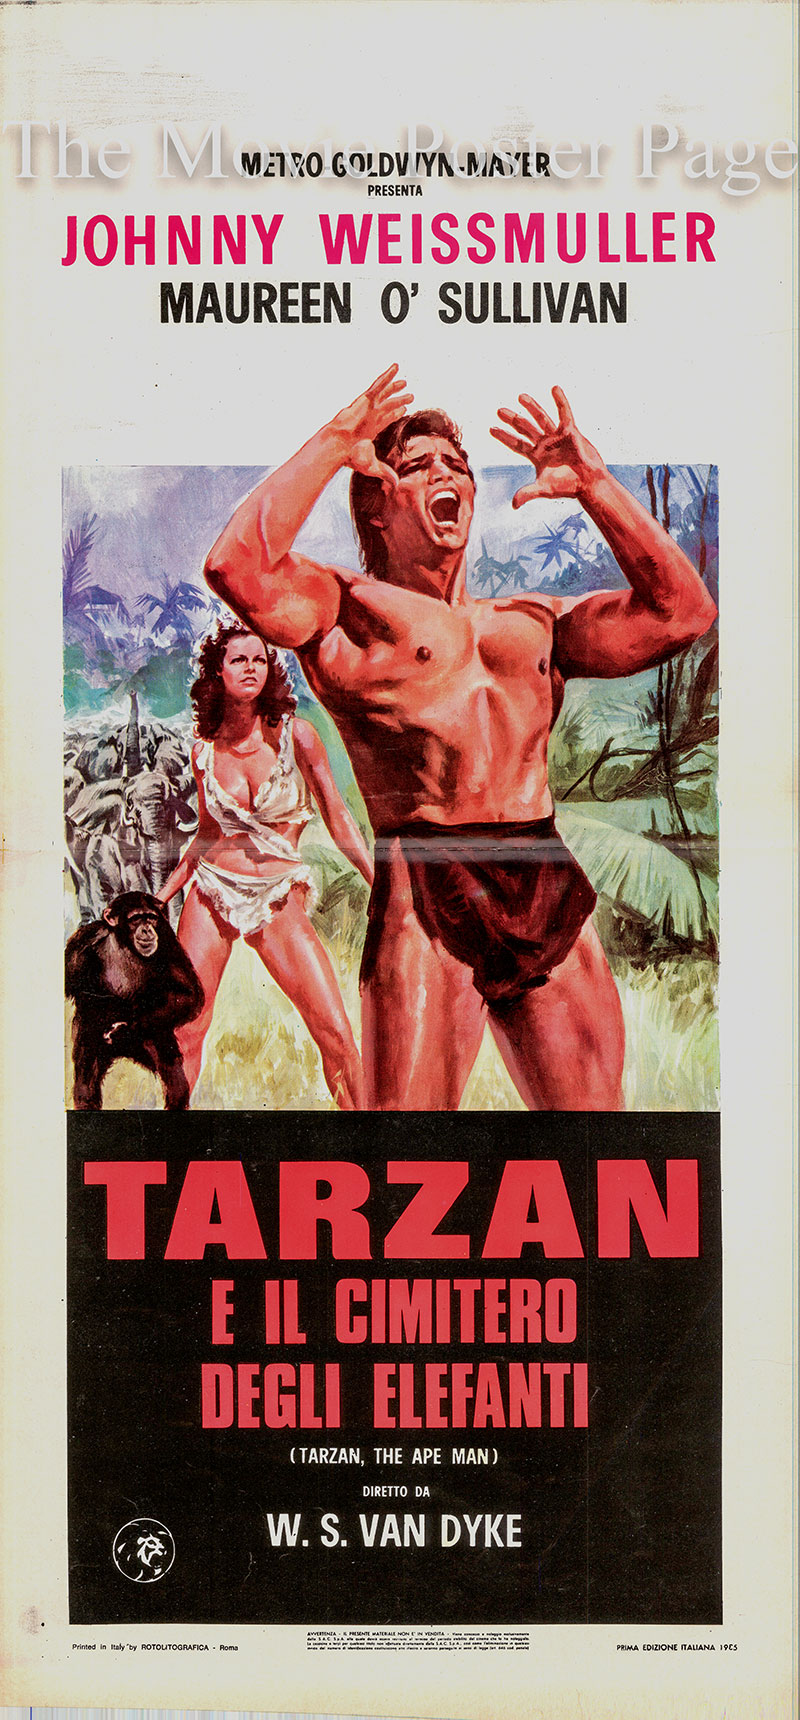 Pictured is an Italian locandina poster for a 1960s rerelease of the 1932 W.S. Van Dyke film <i>Tarzan the Ape Man</i> based on a screenplay by Cyril Hume and starring Johnny Weissmuller as Tarzan.